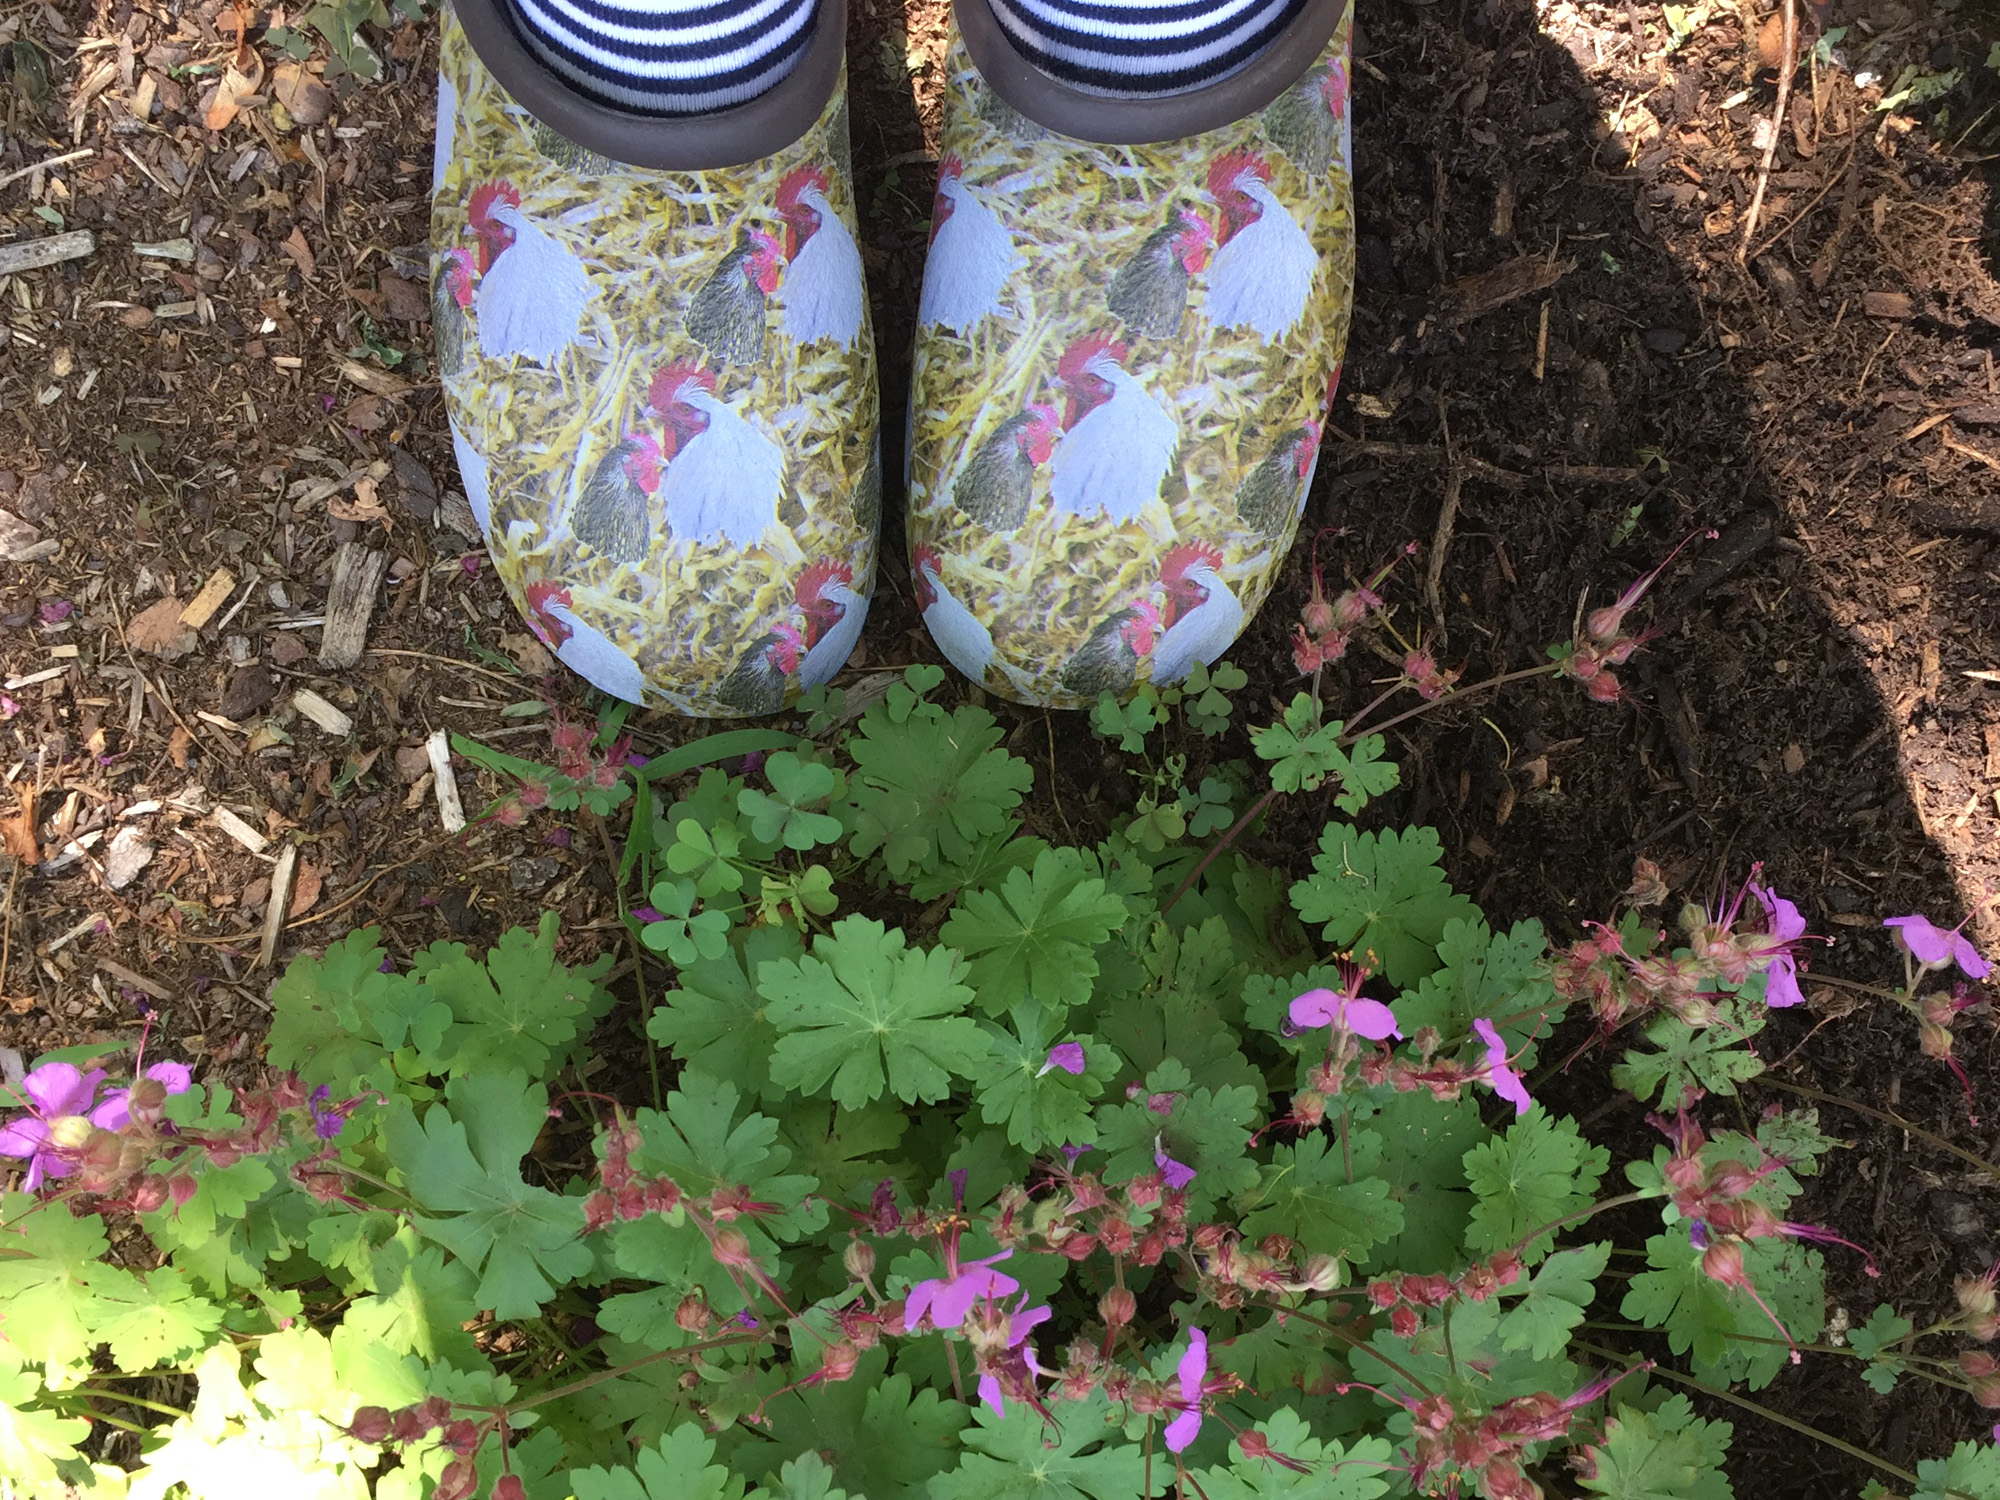 garden clogs with chickens